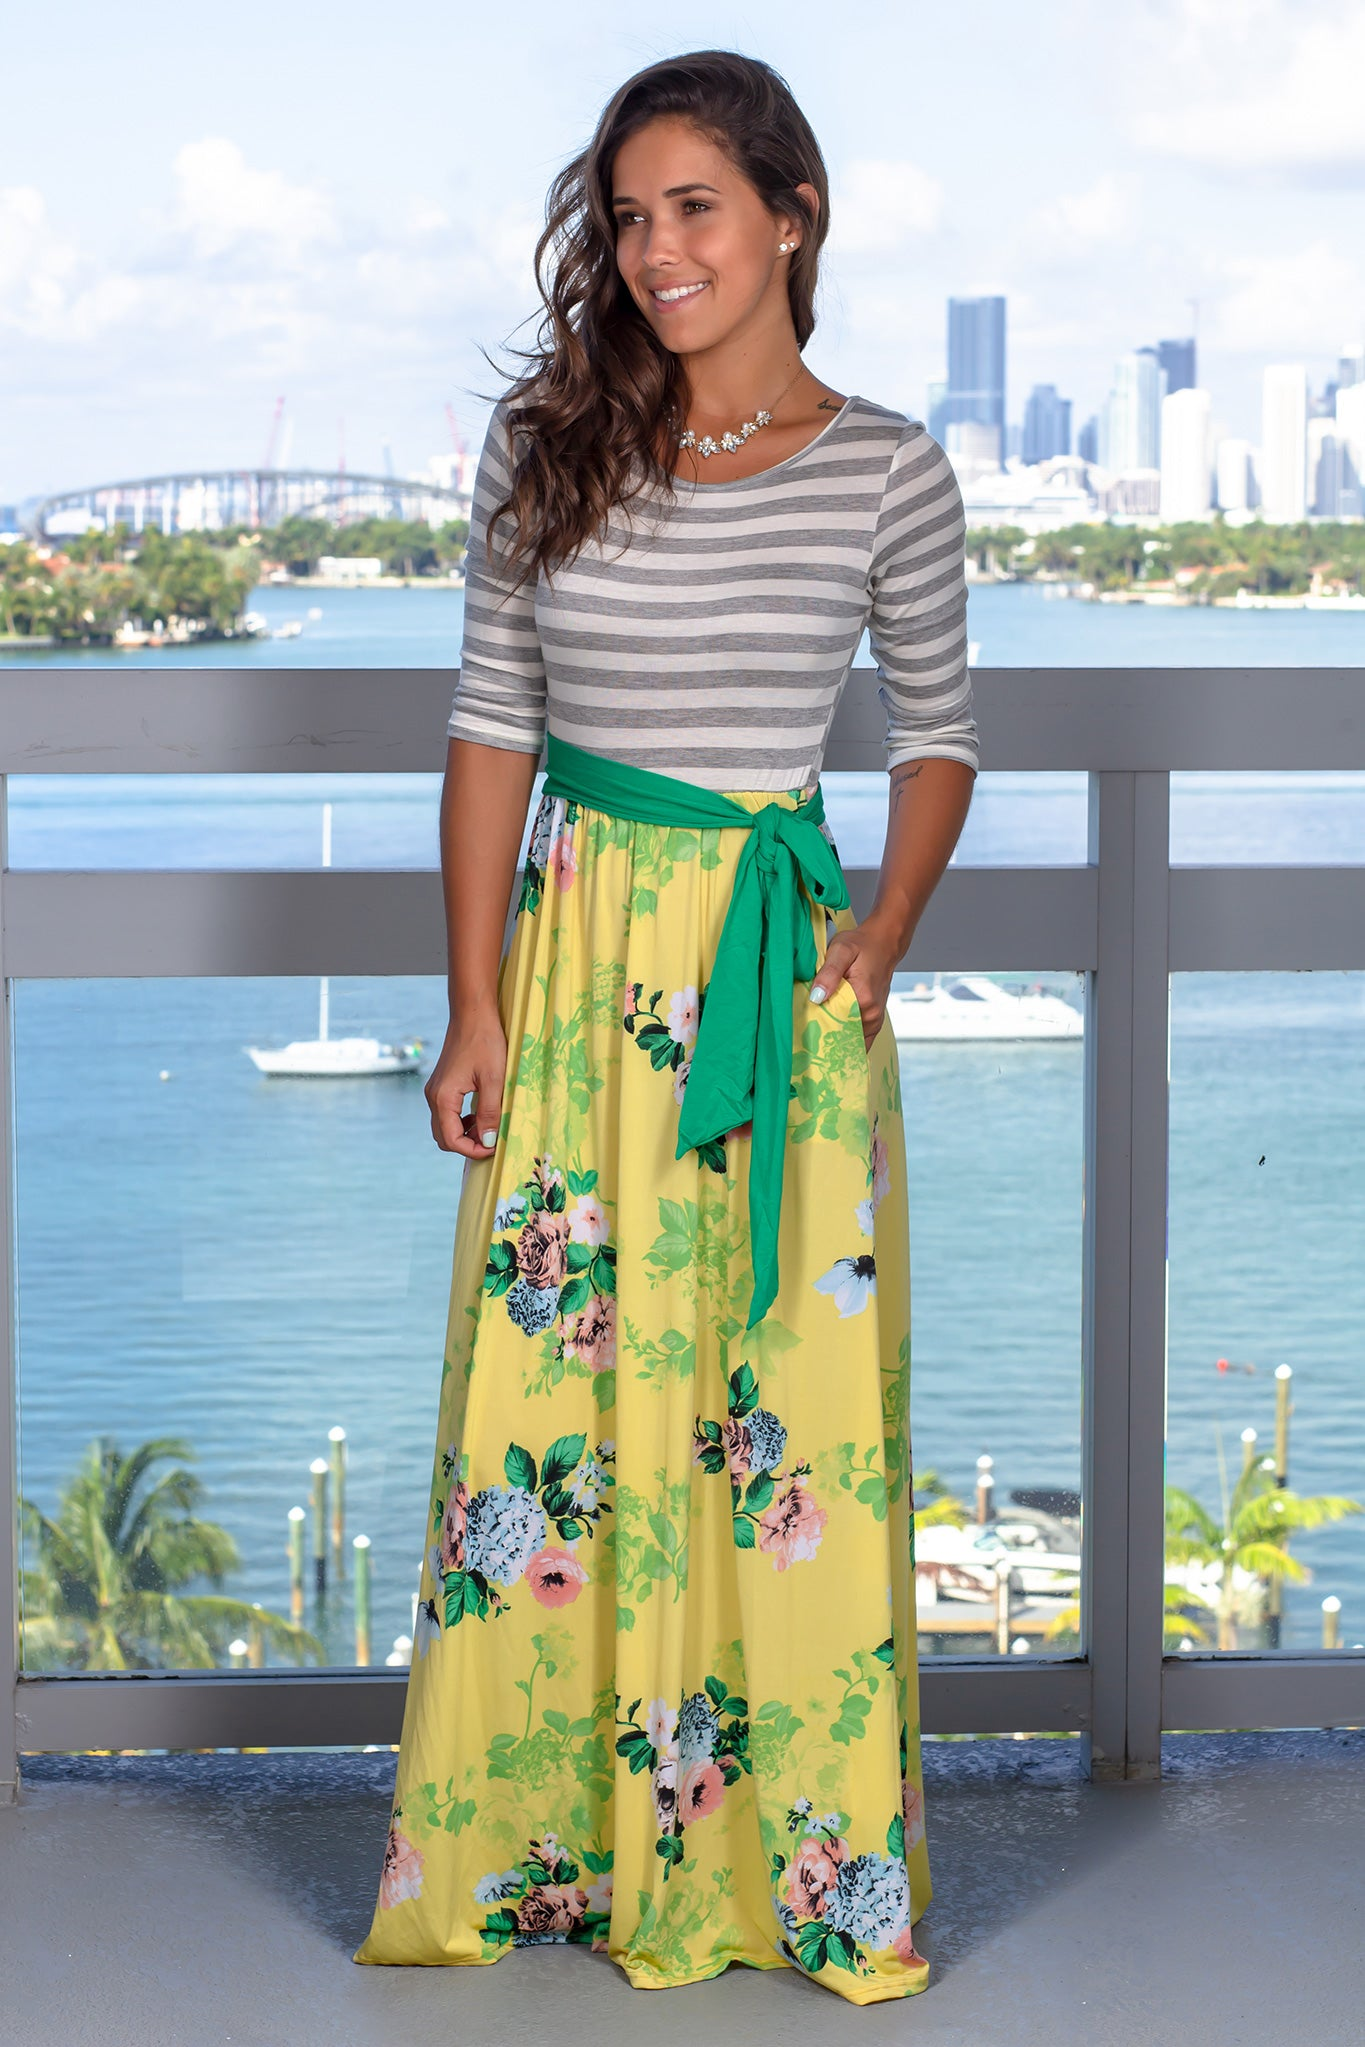 Gray Striped Maxi Dress with Yellow Floral Skirt